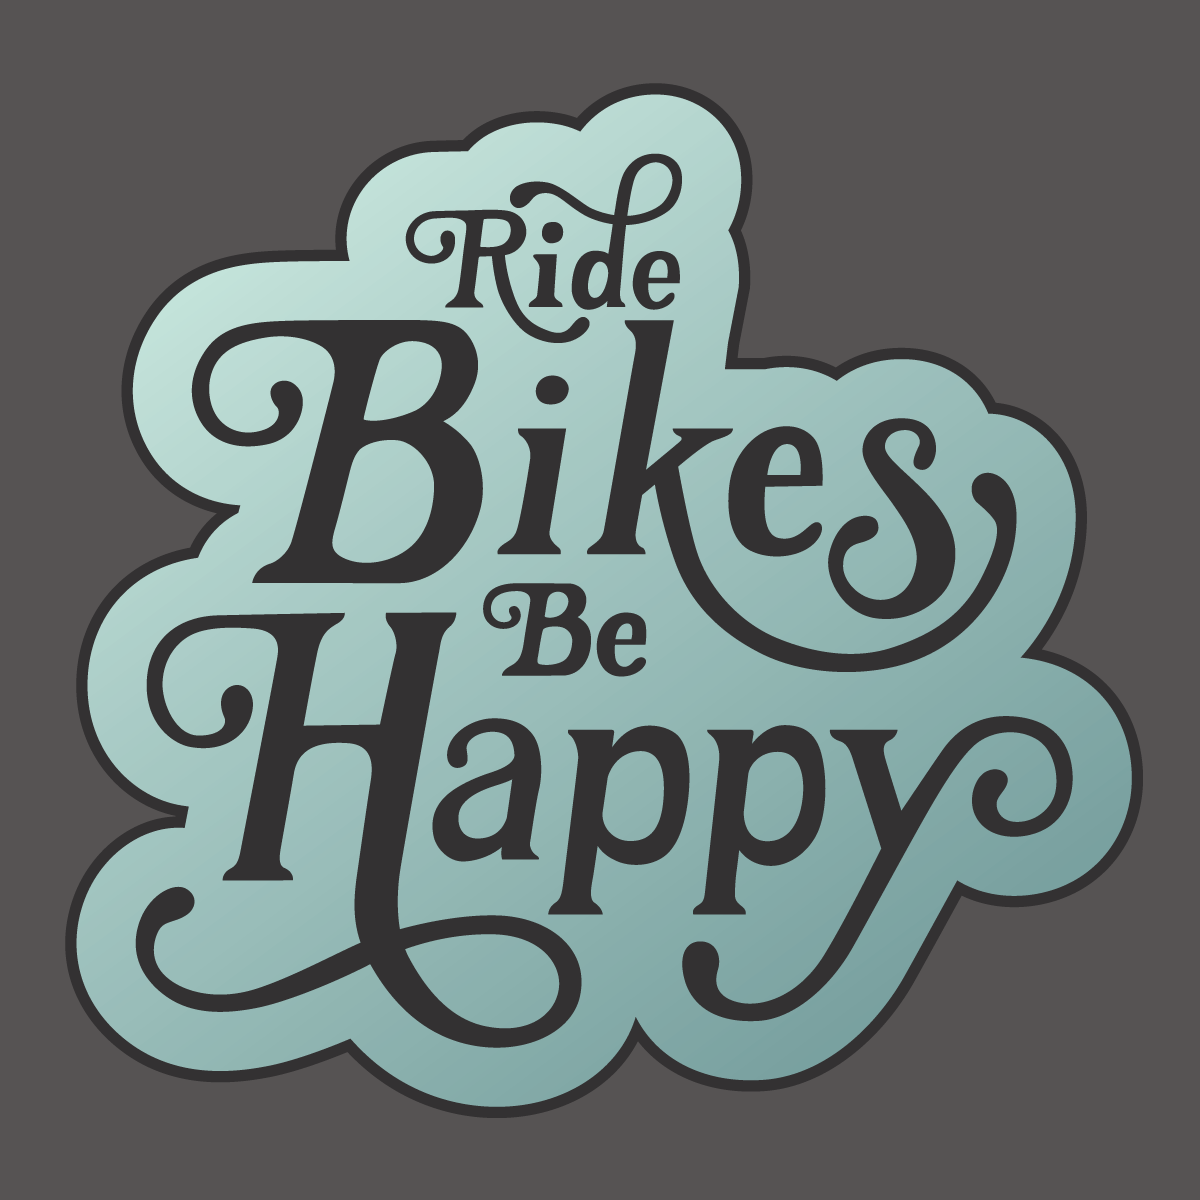 Ride Bikes Be Happy - Sticker.png